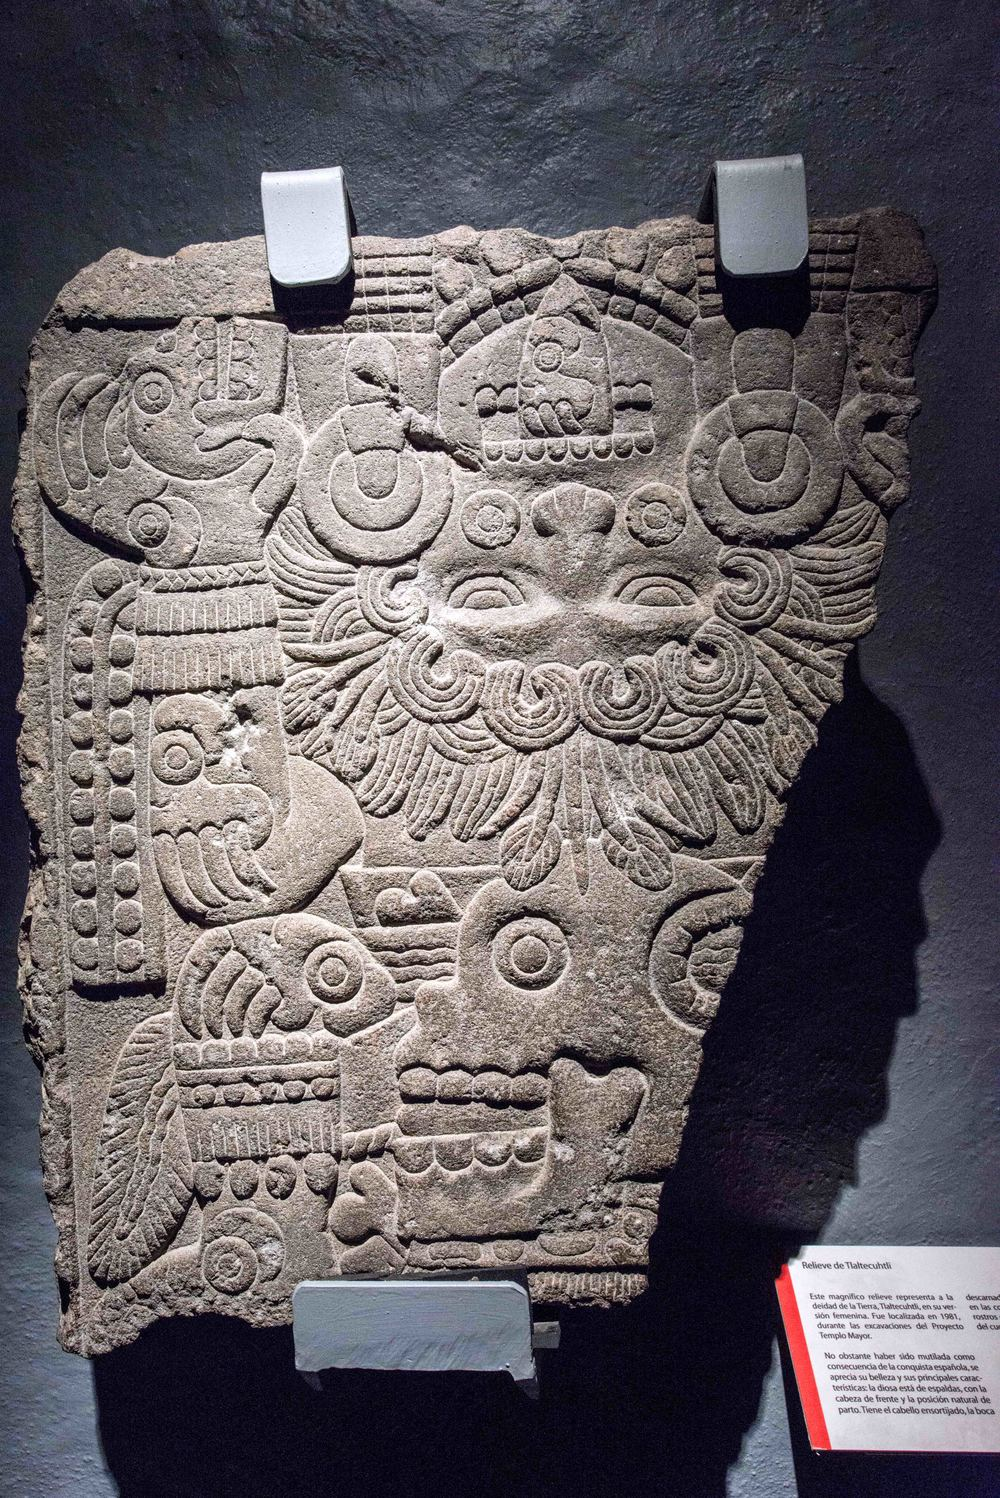 Templo Mayor Museum, Mexico City.